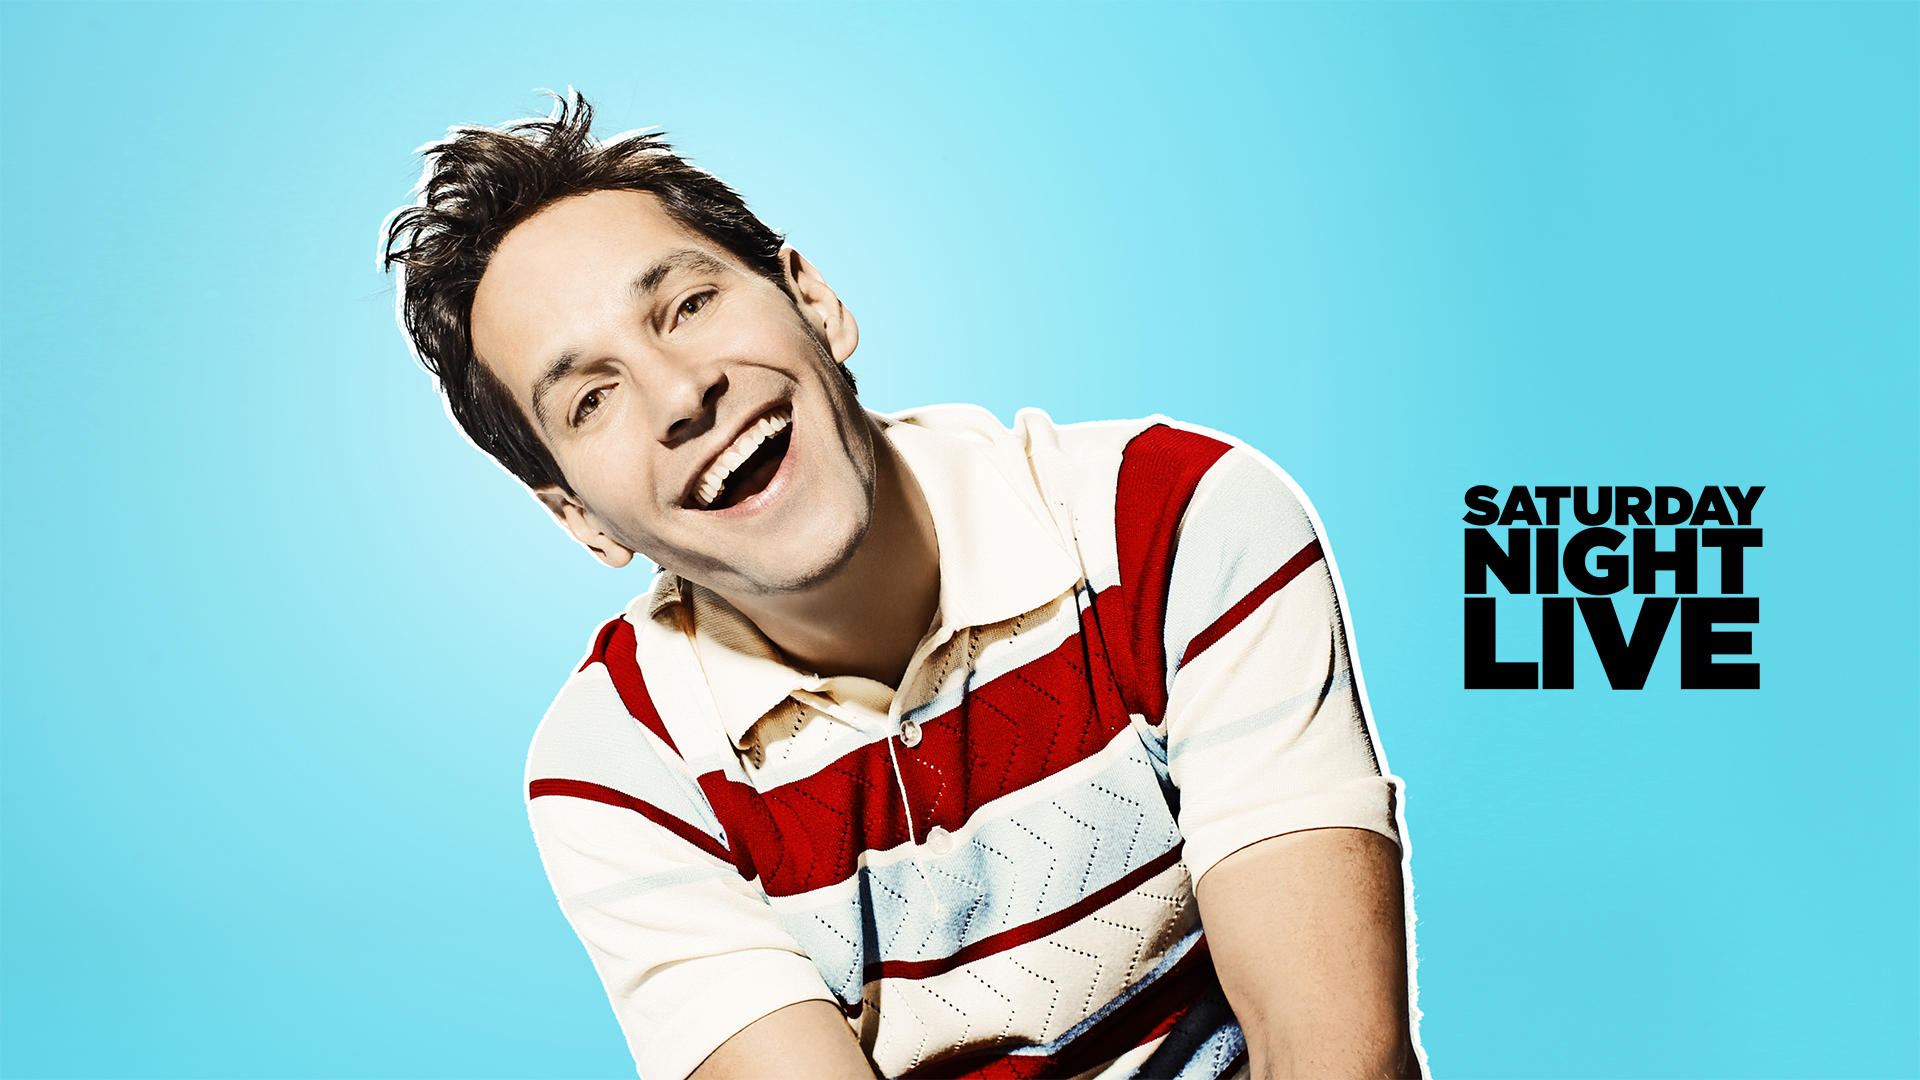 Paul Rudd hosts with musical guest One Direction in Episode 1649 of Saturday Night Live on December 7, 2013.